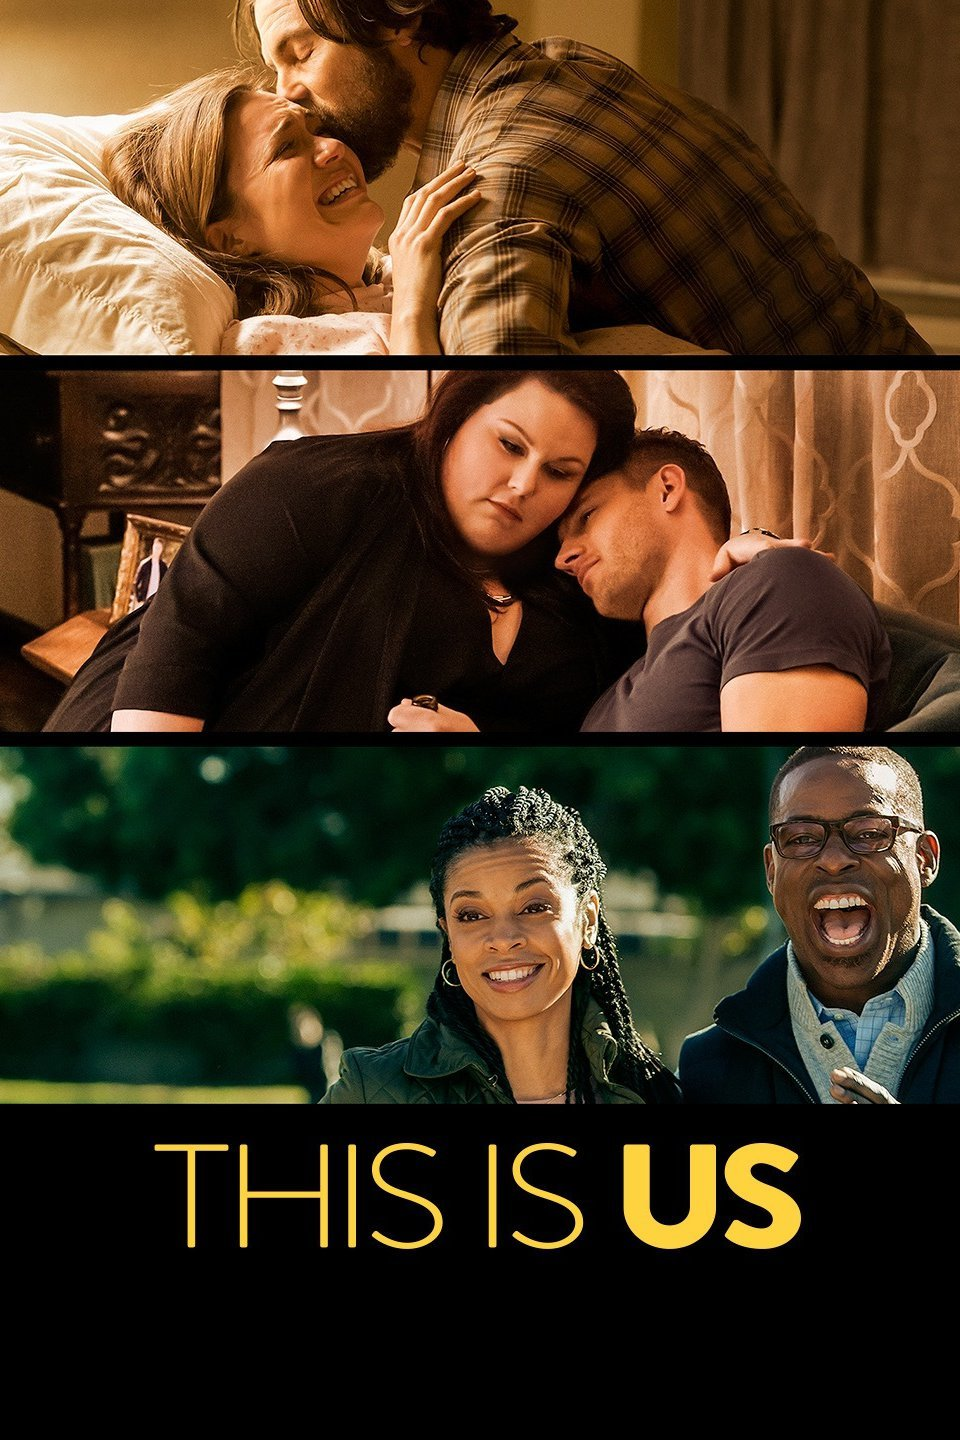 This Is Us T1 E3